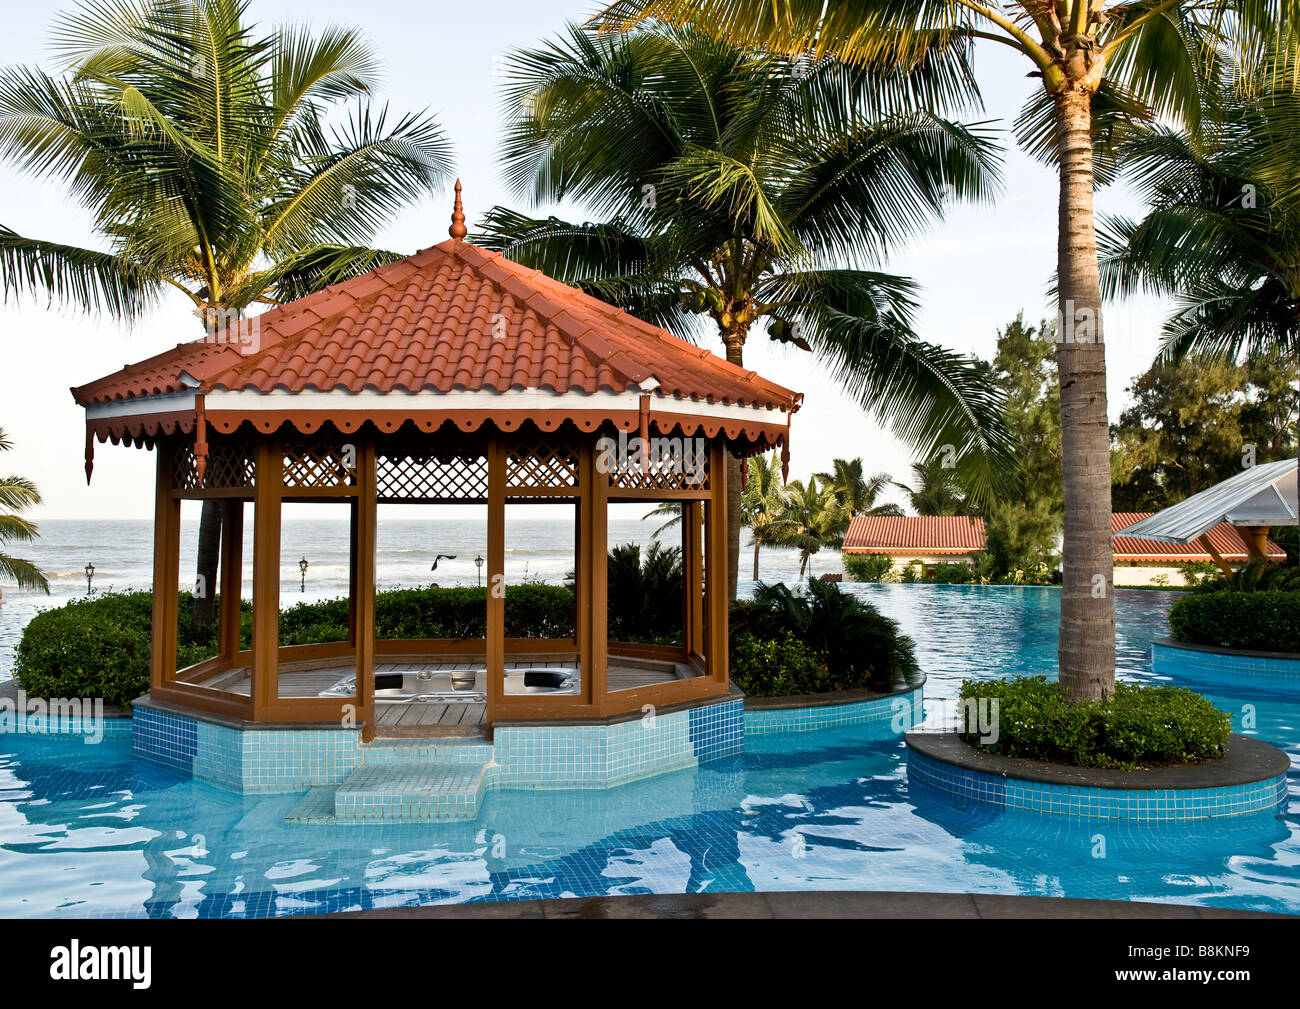 Cool gazebo in swimming pool surrounded by islands of palm ...